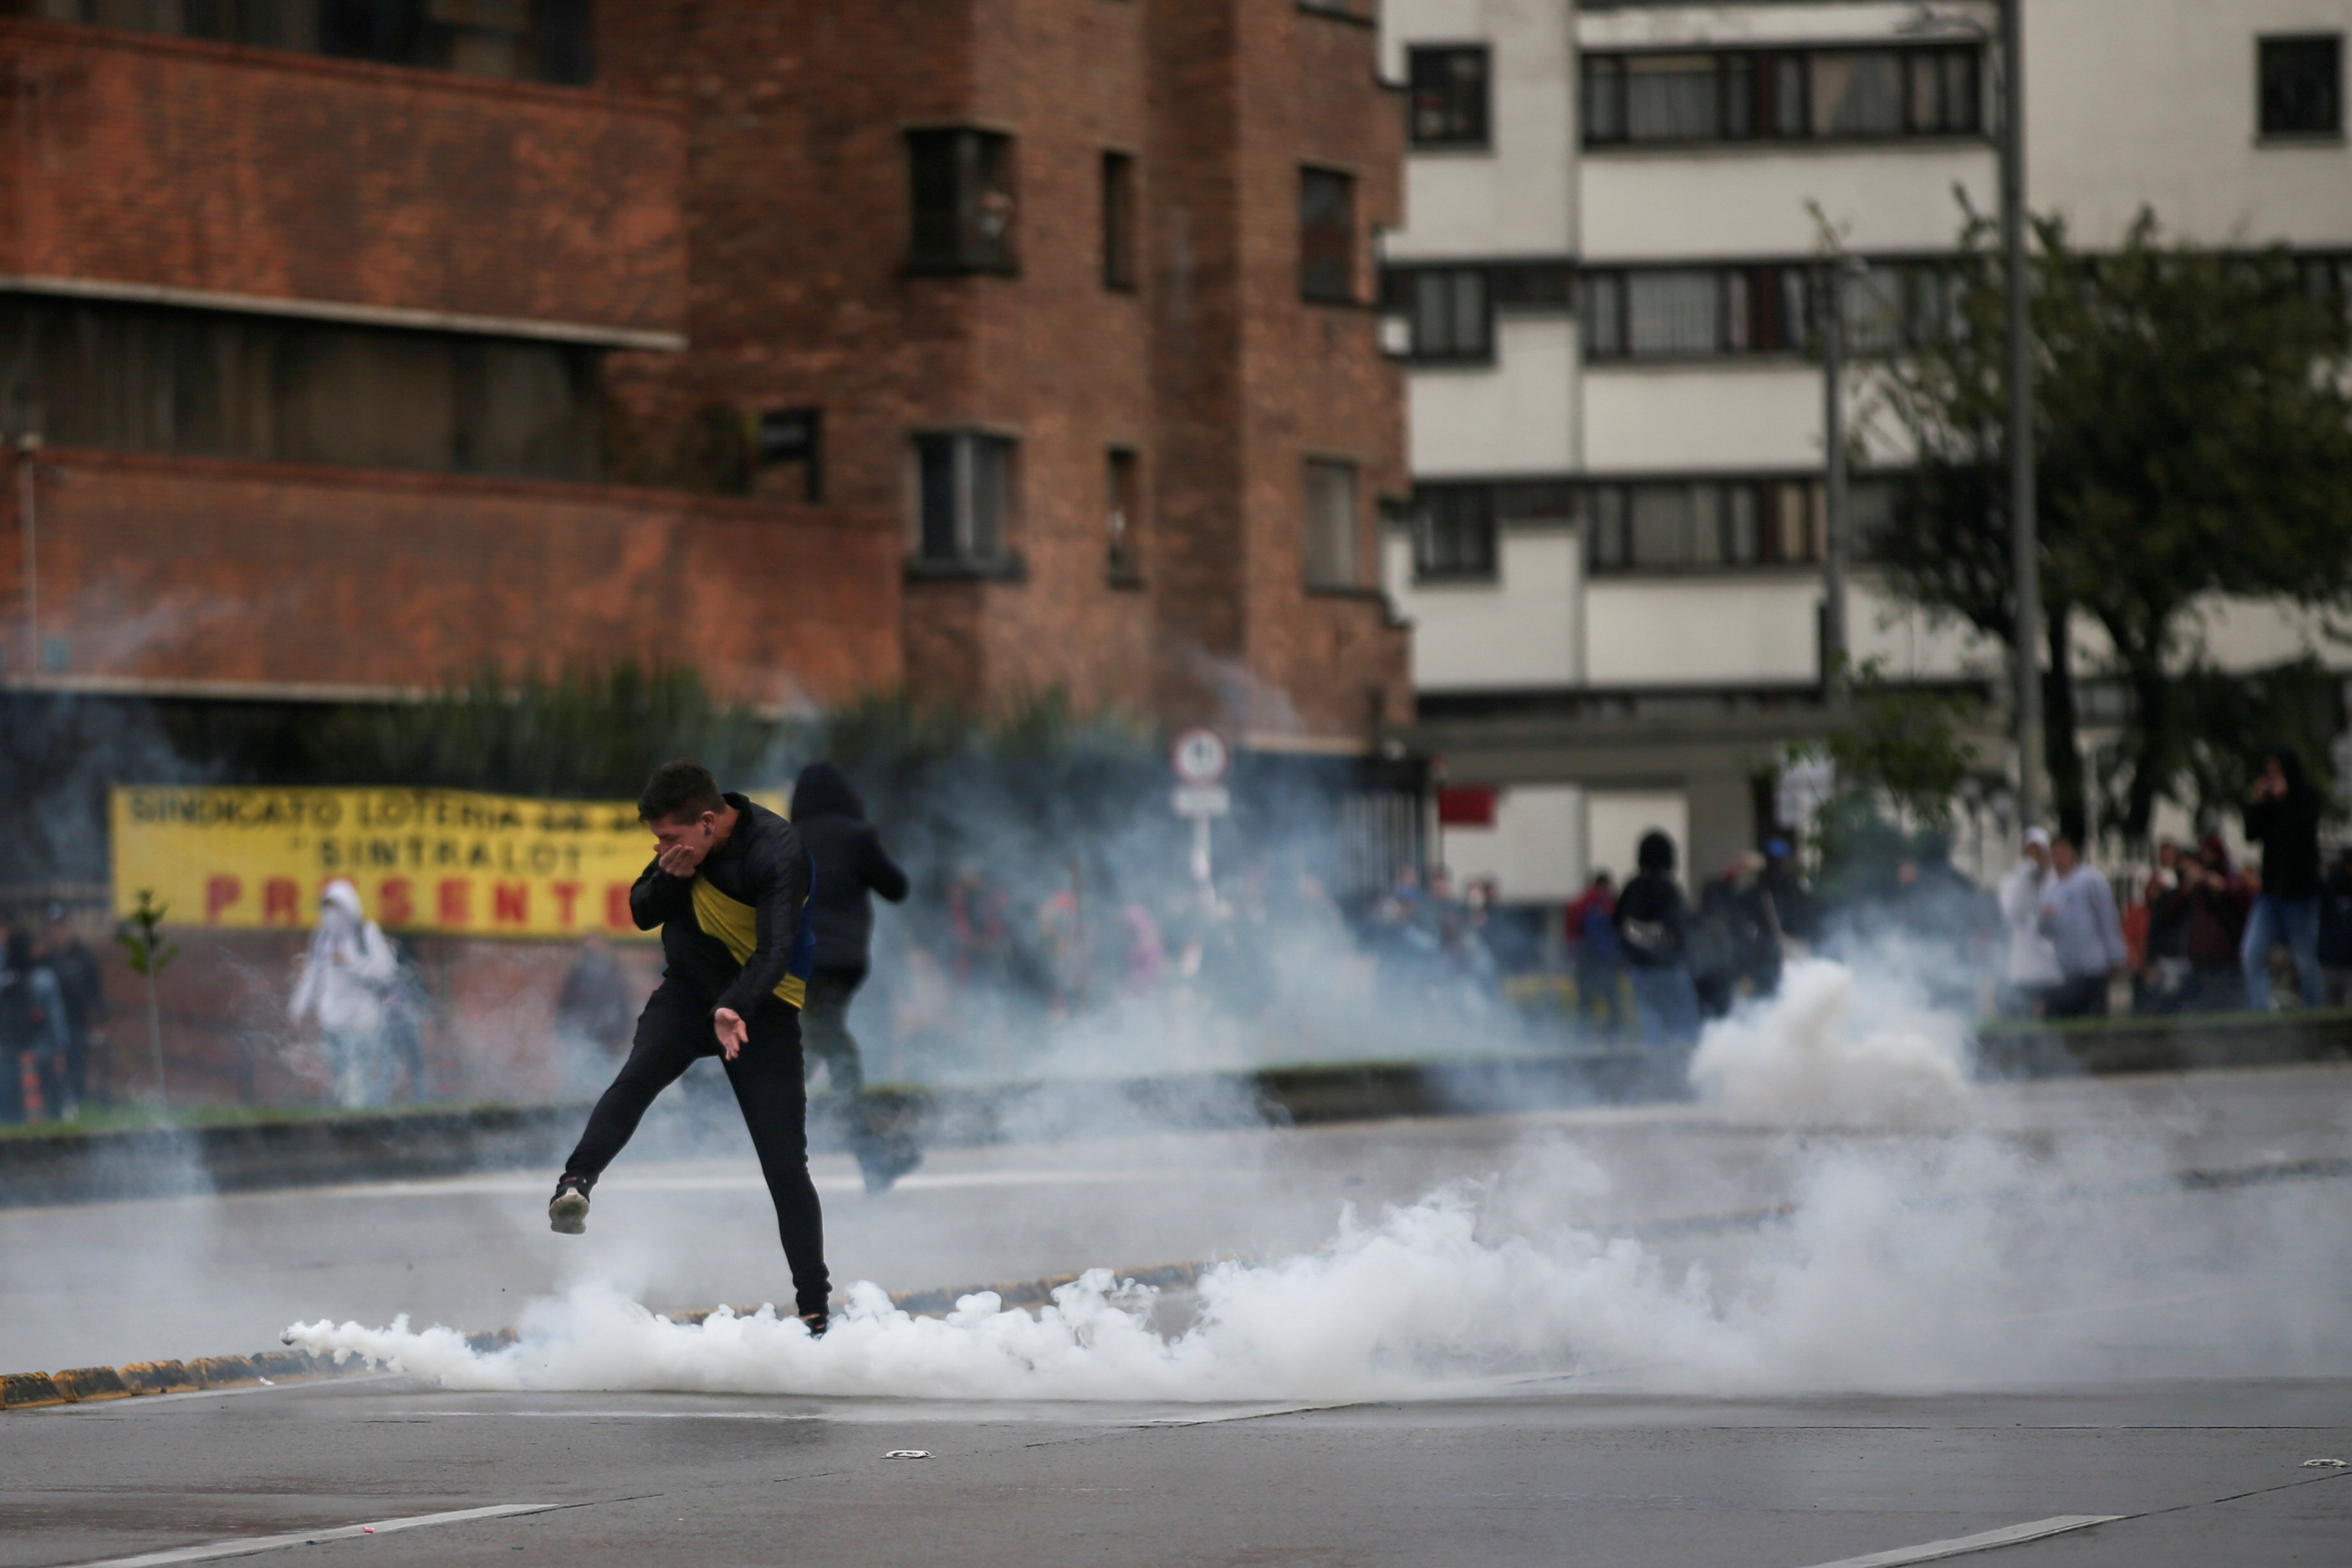 A demonstrator kicks back a tear gas canister during a protest in Bogota, Colombia, November 21, 2019. REUTERS/Luisa Gonzalez